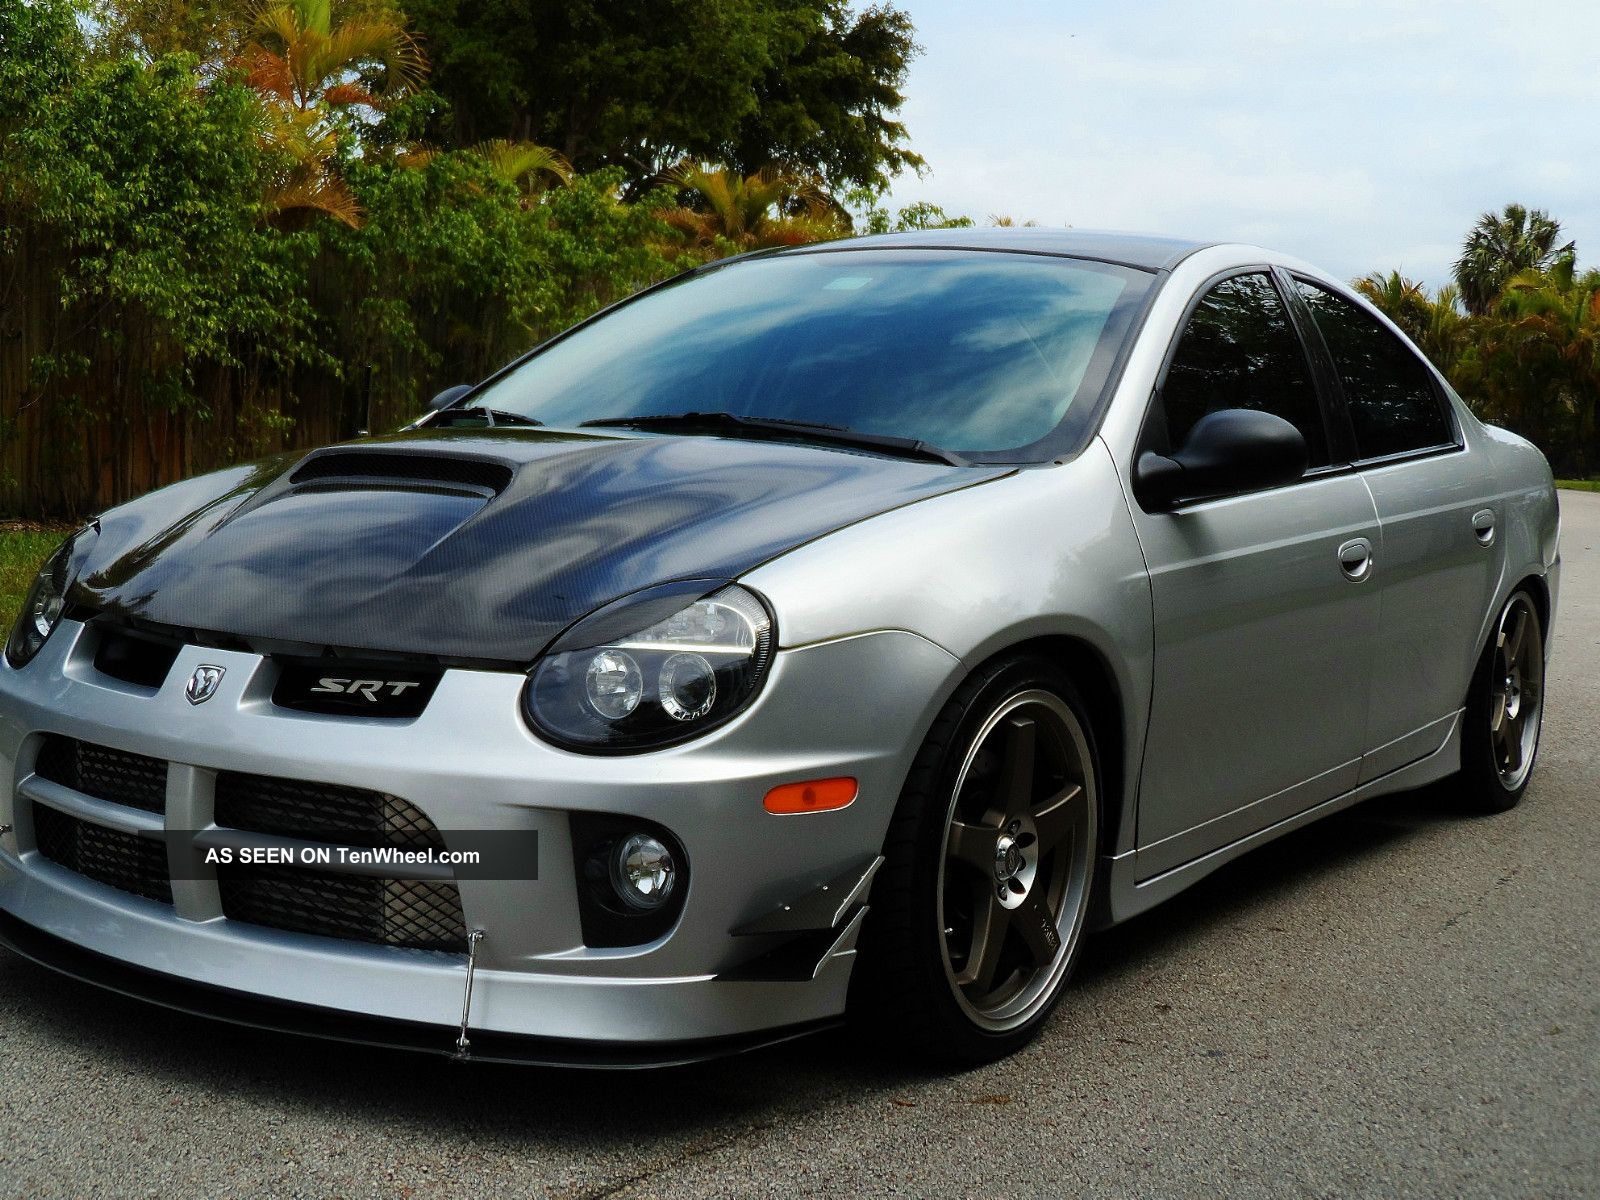 2003 Dodge Neon Srt 4 Completely Custom And Very Fast